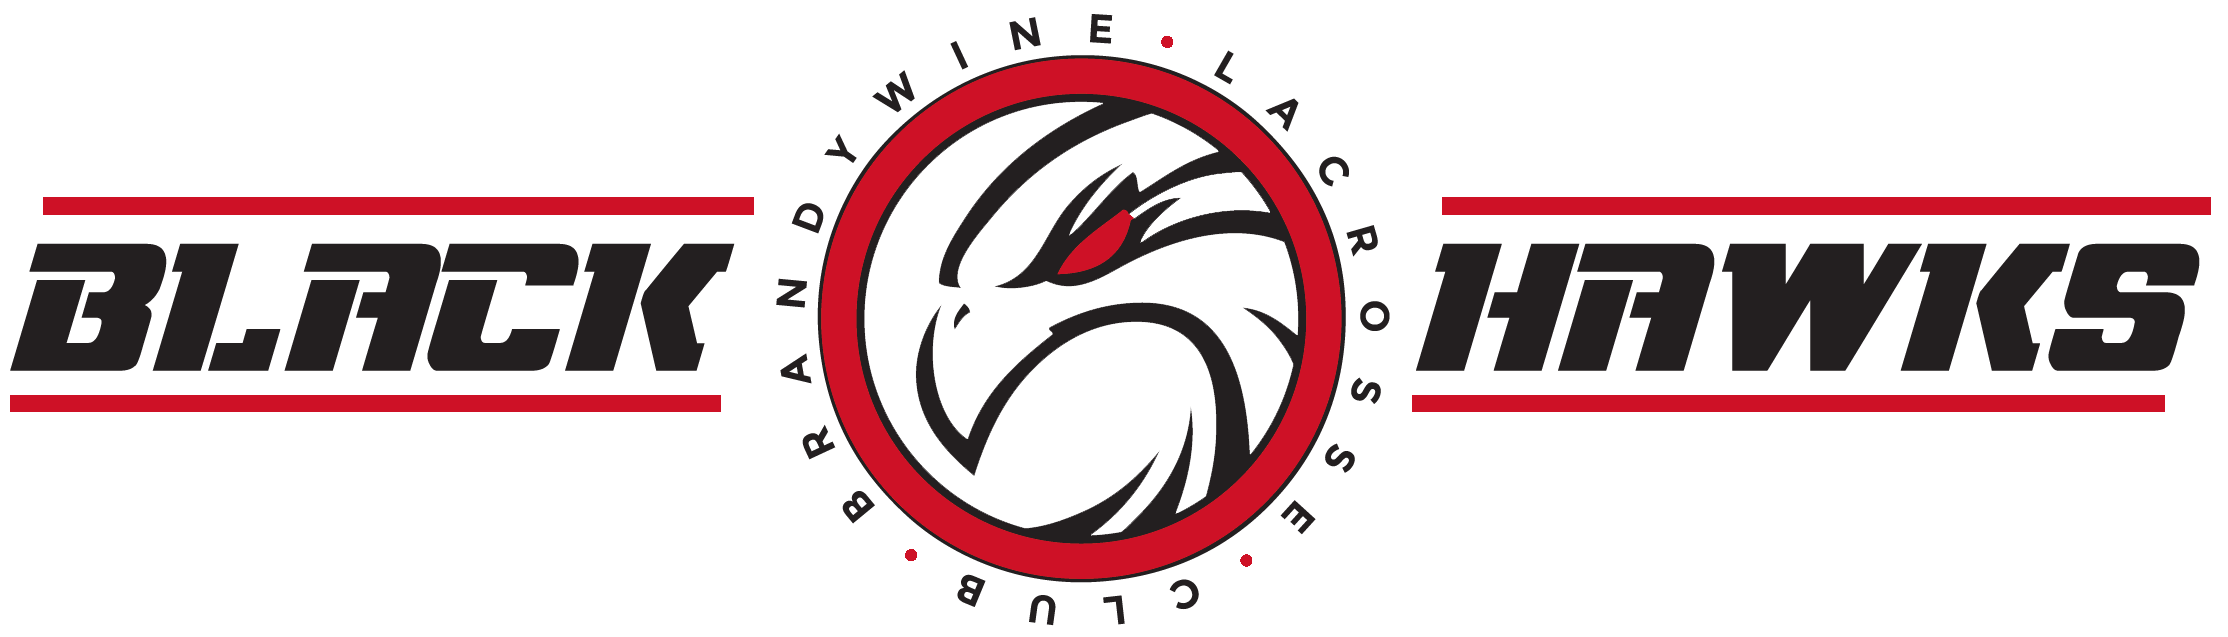 Black-hawks-full-logo